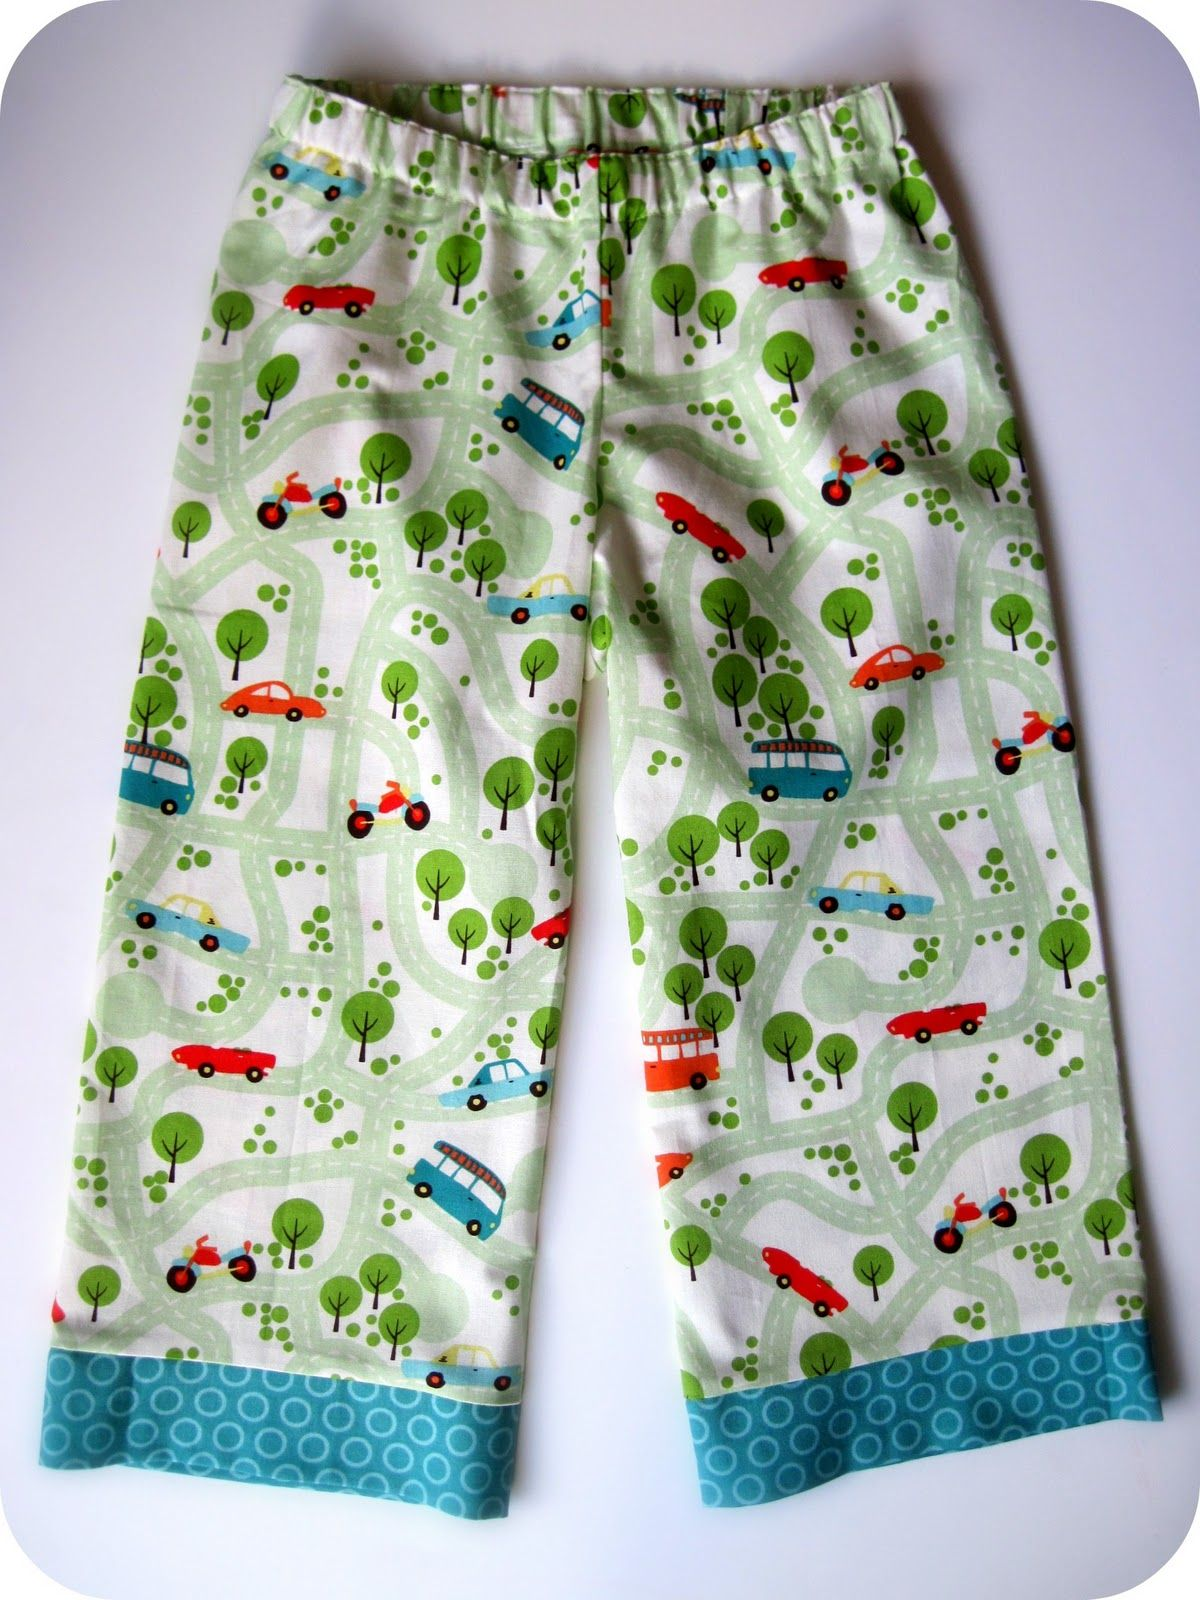 Sewing boy pj bottoms need to make some summer ones:)